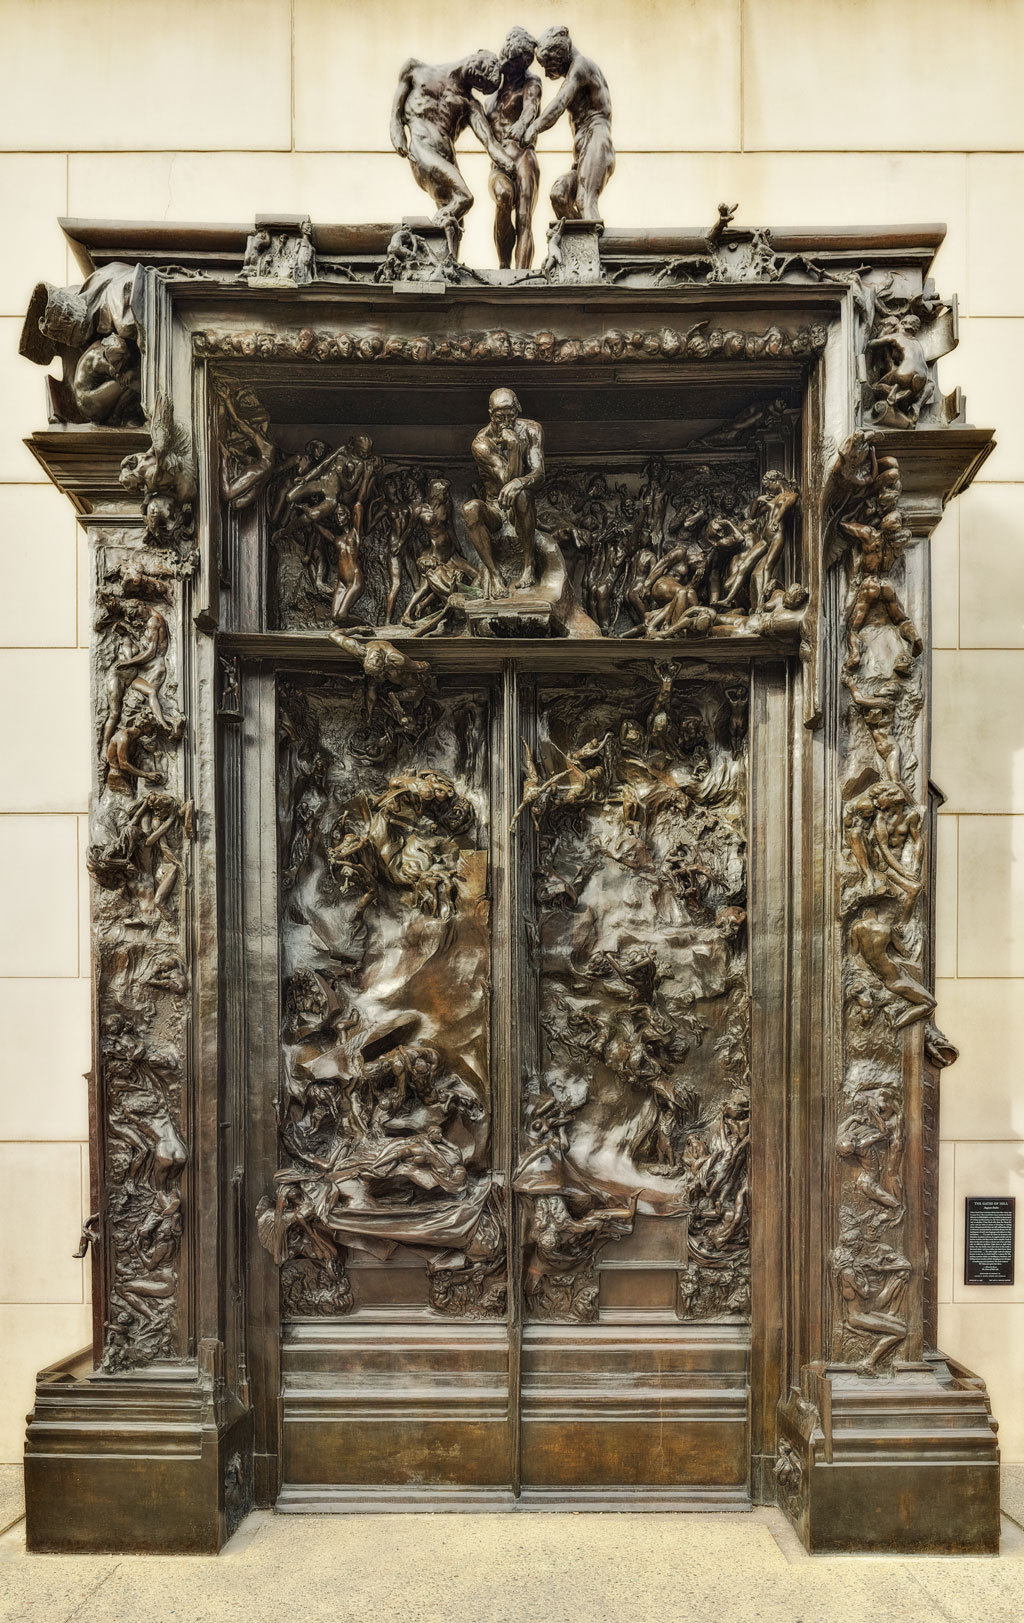 "The Gates of Hell (La Porte de l'Enfer) - Auguste Rodin: depicts a scene from ""The Inferno"", the first section of Dante Alighieri's Divine Comedy. It contains 180 figures. The figures range from 15 cm high up to more than one metre. Several of the figures were also cast independently by Rodin: The Thinker (Le Penseur), also called The Poet, is located above the door panels. One interpretation suggests that it might represent Dante looking down to the characters in the Inferno. Another interpretation is that the Thinker is Rodin himself meditating about his composition. Others believe that the figure may be Adam, contemplating the destruction brought upon mankind because of his sin. The Kiss (Le Baiser) Rodin wanted to represent their initial joy as well as their final damnation. Ugolino and His Children (Ugolin et ses enfants) depicts Ugolino della Gherardesca, who according to the story, ate the corpses of his children after they died by starvation. (Dante, Inferno, Canto XXXIII) The Three Shades (Les trois Ombres) The figures originally pointed to the phrase ""Lasciate ogne speranza, voi ch'intrate"" (""Abandon all hope, ye who enter here"") from Canto 3 of the Inferno. Paolo and Francesca is shown on the left door pane. Paolo tries to reach Francesca, who seems to slip away. Adam and Eve. Rodin asked the directorate for additional funds for the independent sculptures of Adam and Eve that were meant to frame The Gates of Hell. However, Rodin found he could not get Eve's figure right. Consequently, several figures of Eve were made, none of which were used, and all of them were later sold."